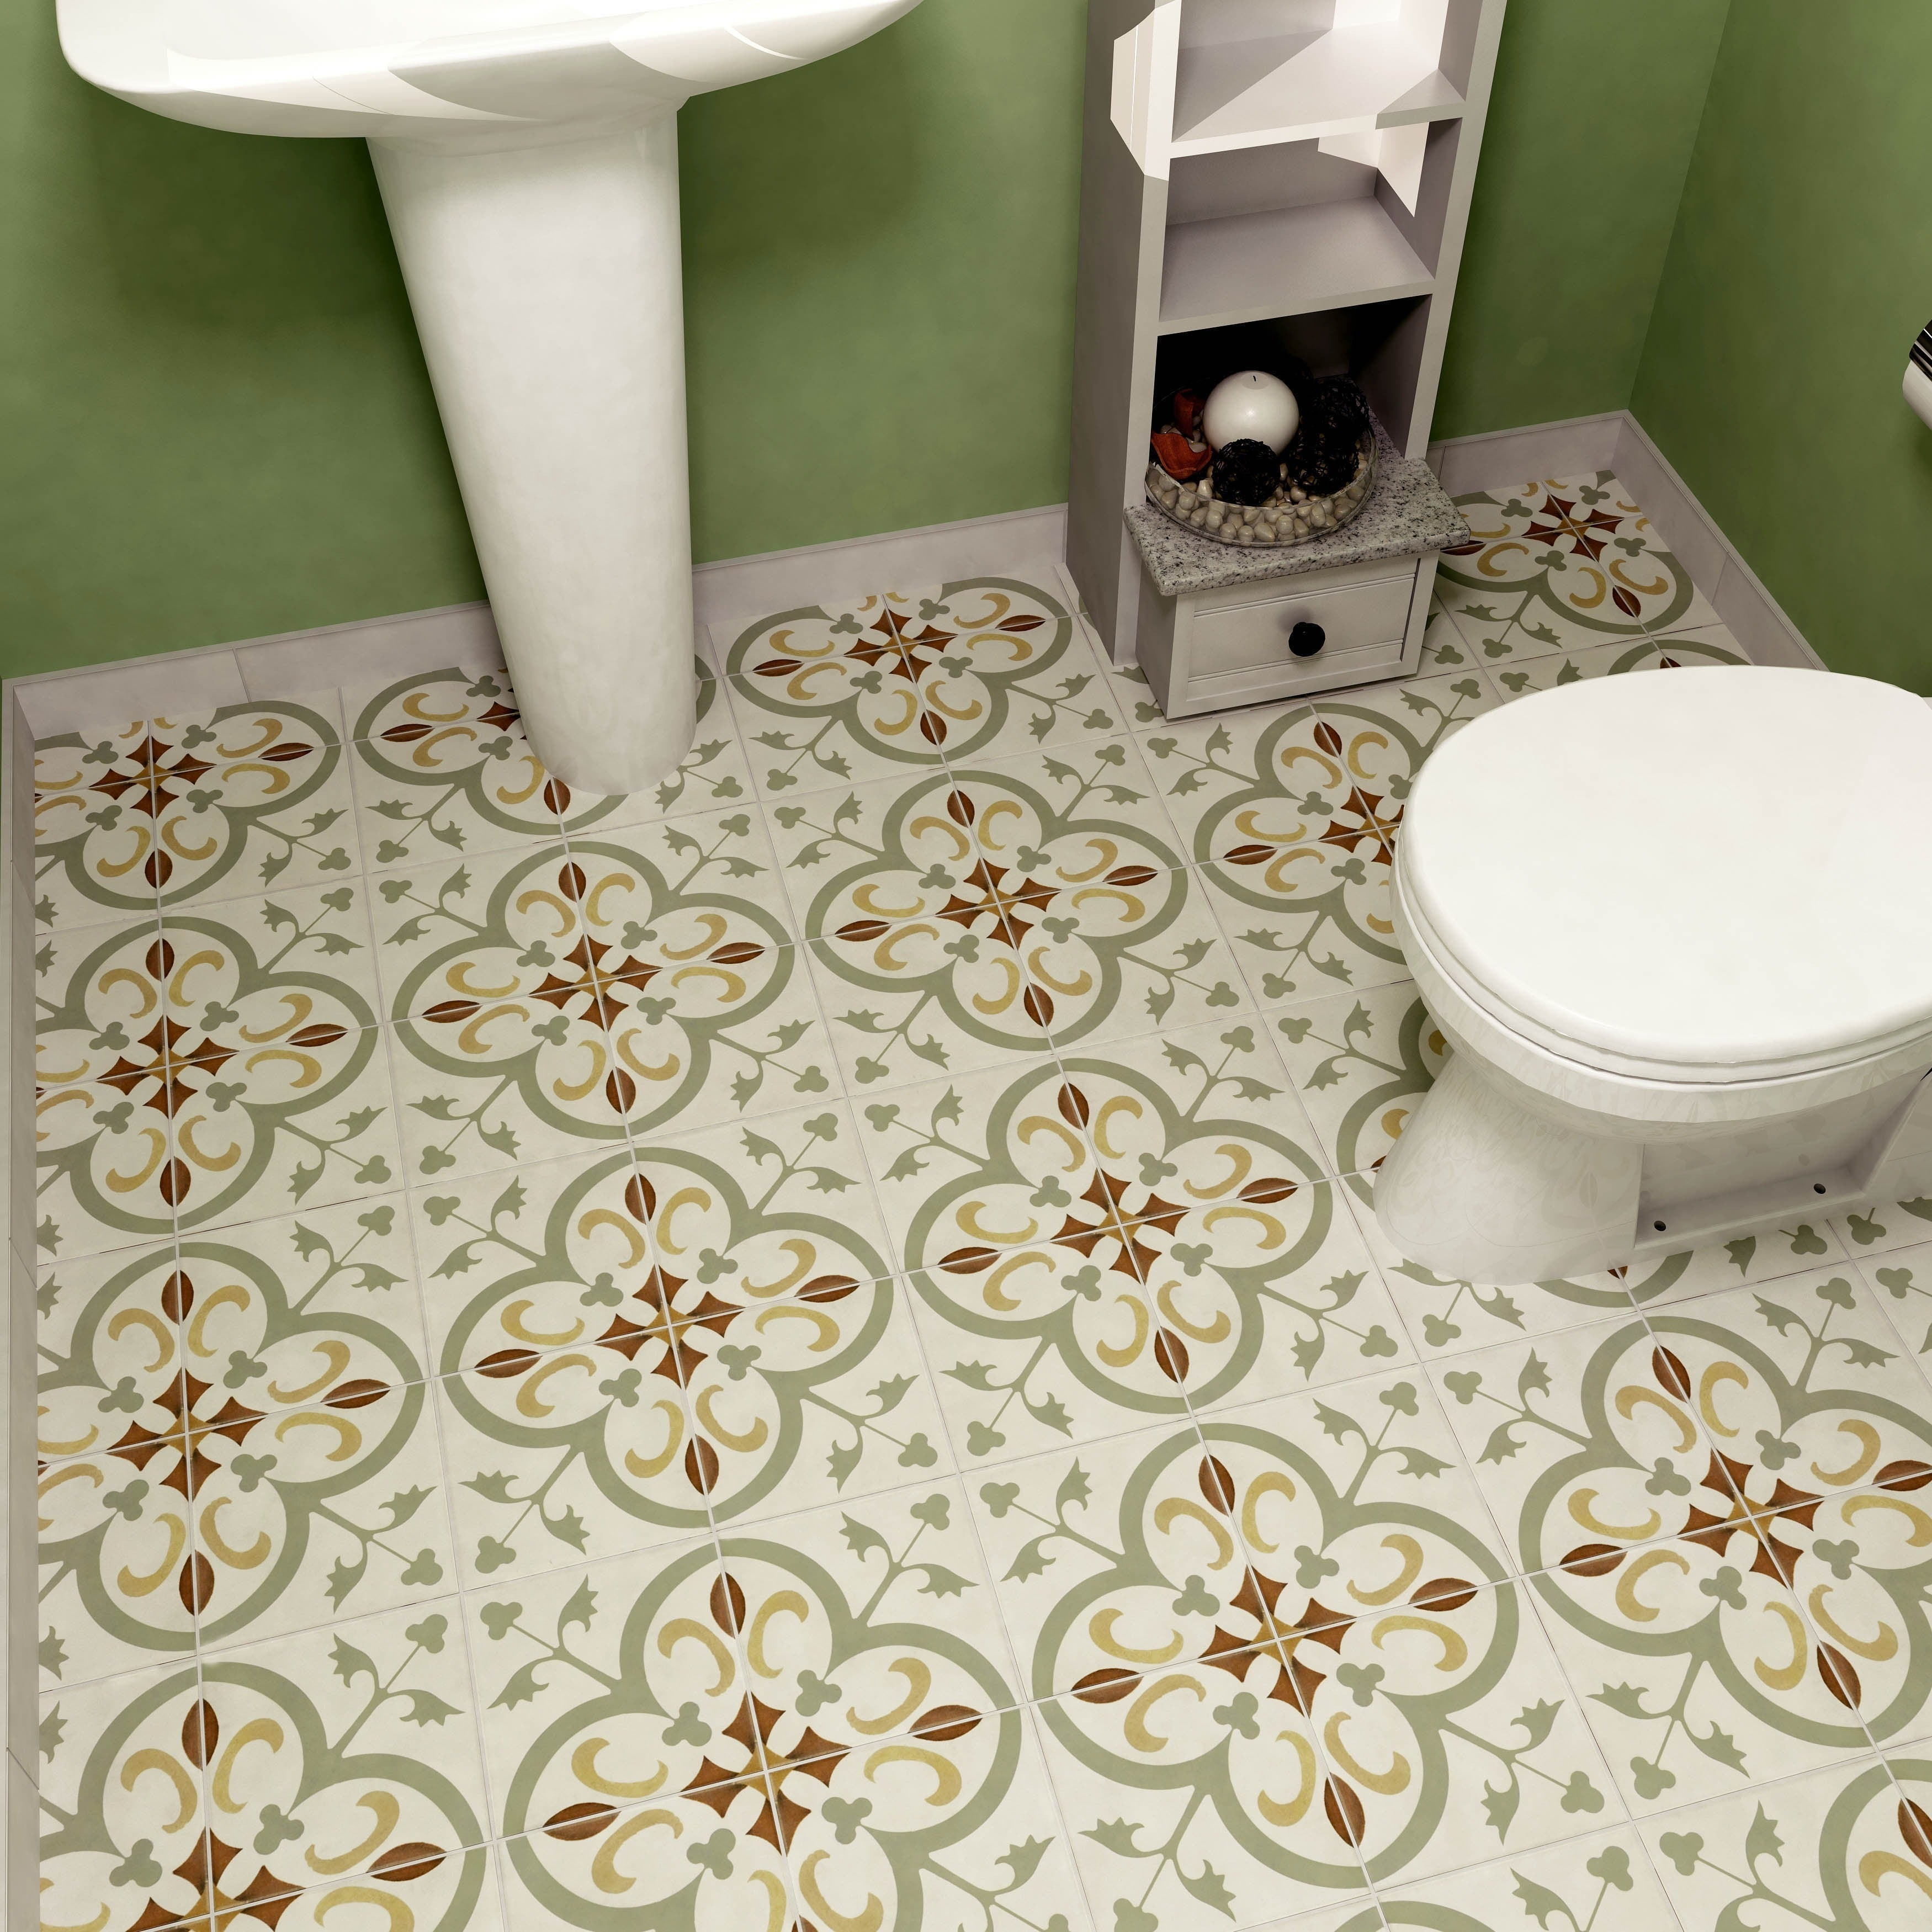 Shop SomerTile 7.75 x 7.75-inch Renaissance Memory Ceramic Floor and ...